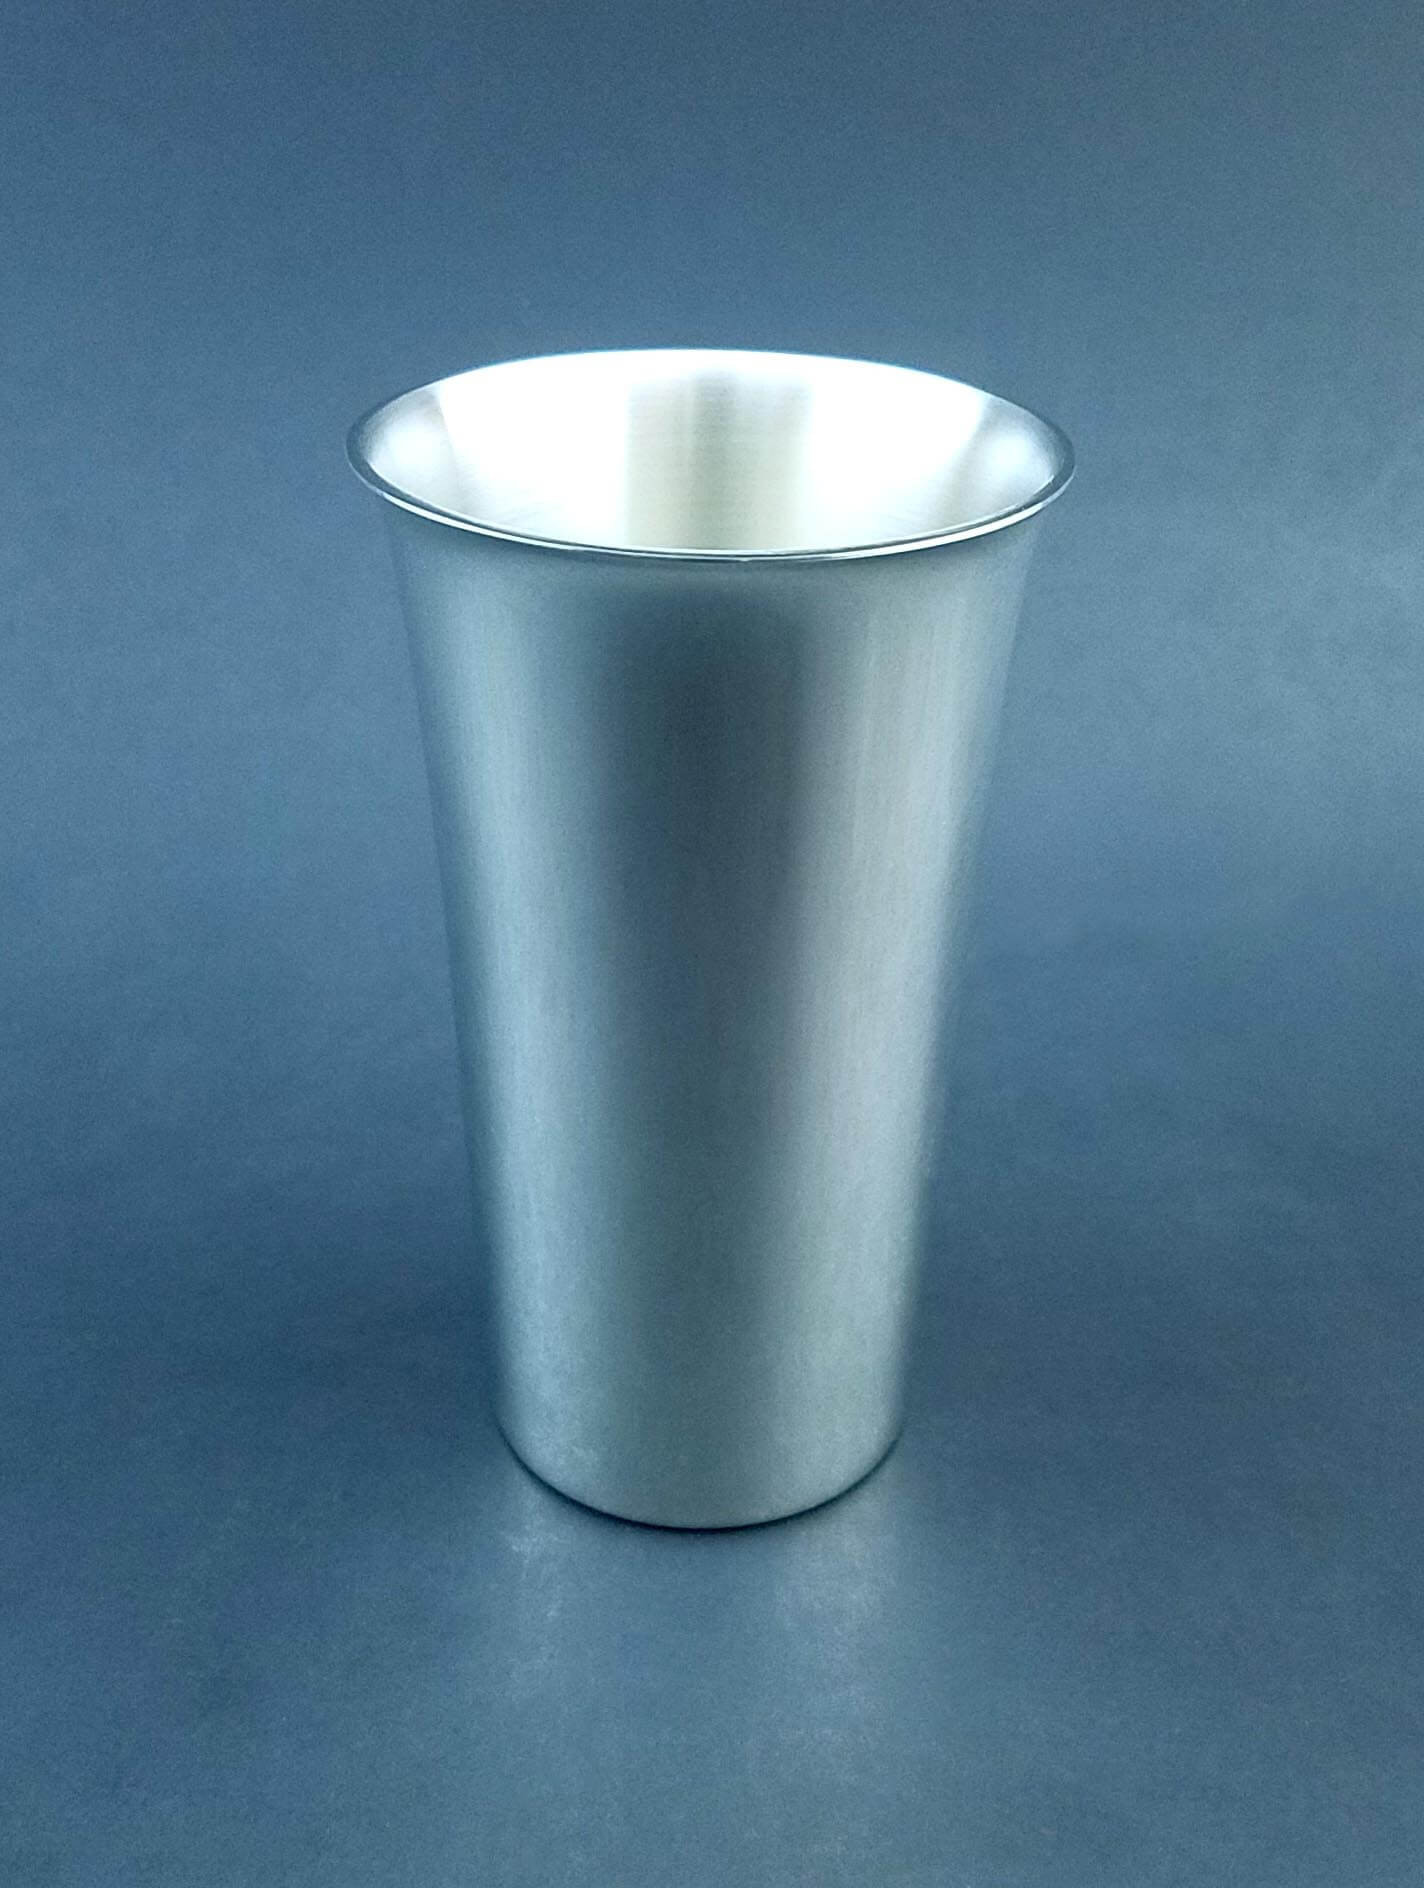 mint julep cup vases wholesale of sterling silver mint julep cups buying guide wholesale and retail pertaining to although it is not specifically meant to hold mint juleps the mint juleps popularity certainly inspired the ice tea julep cup